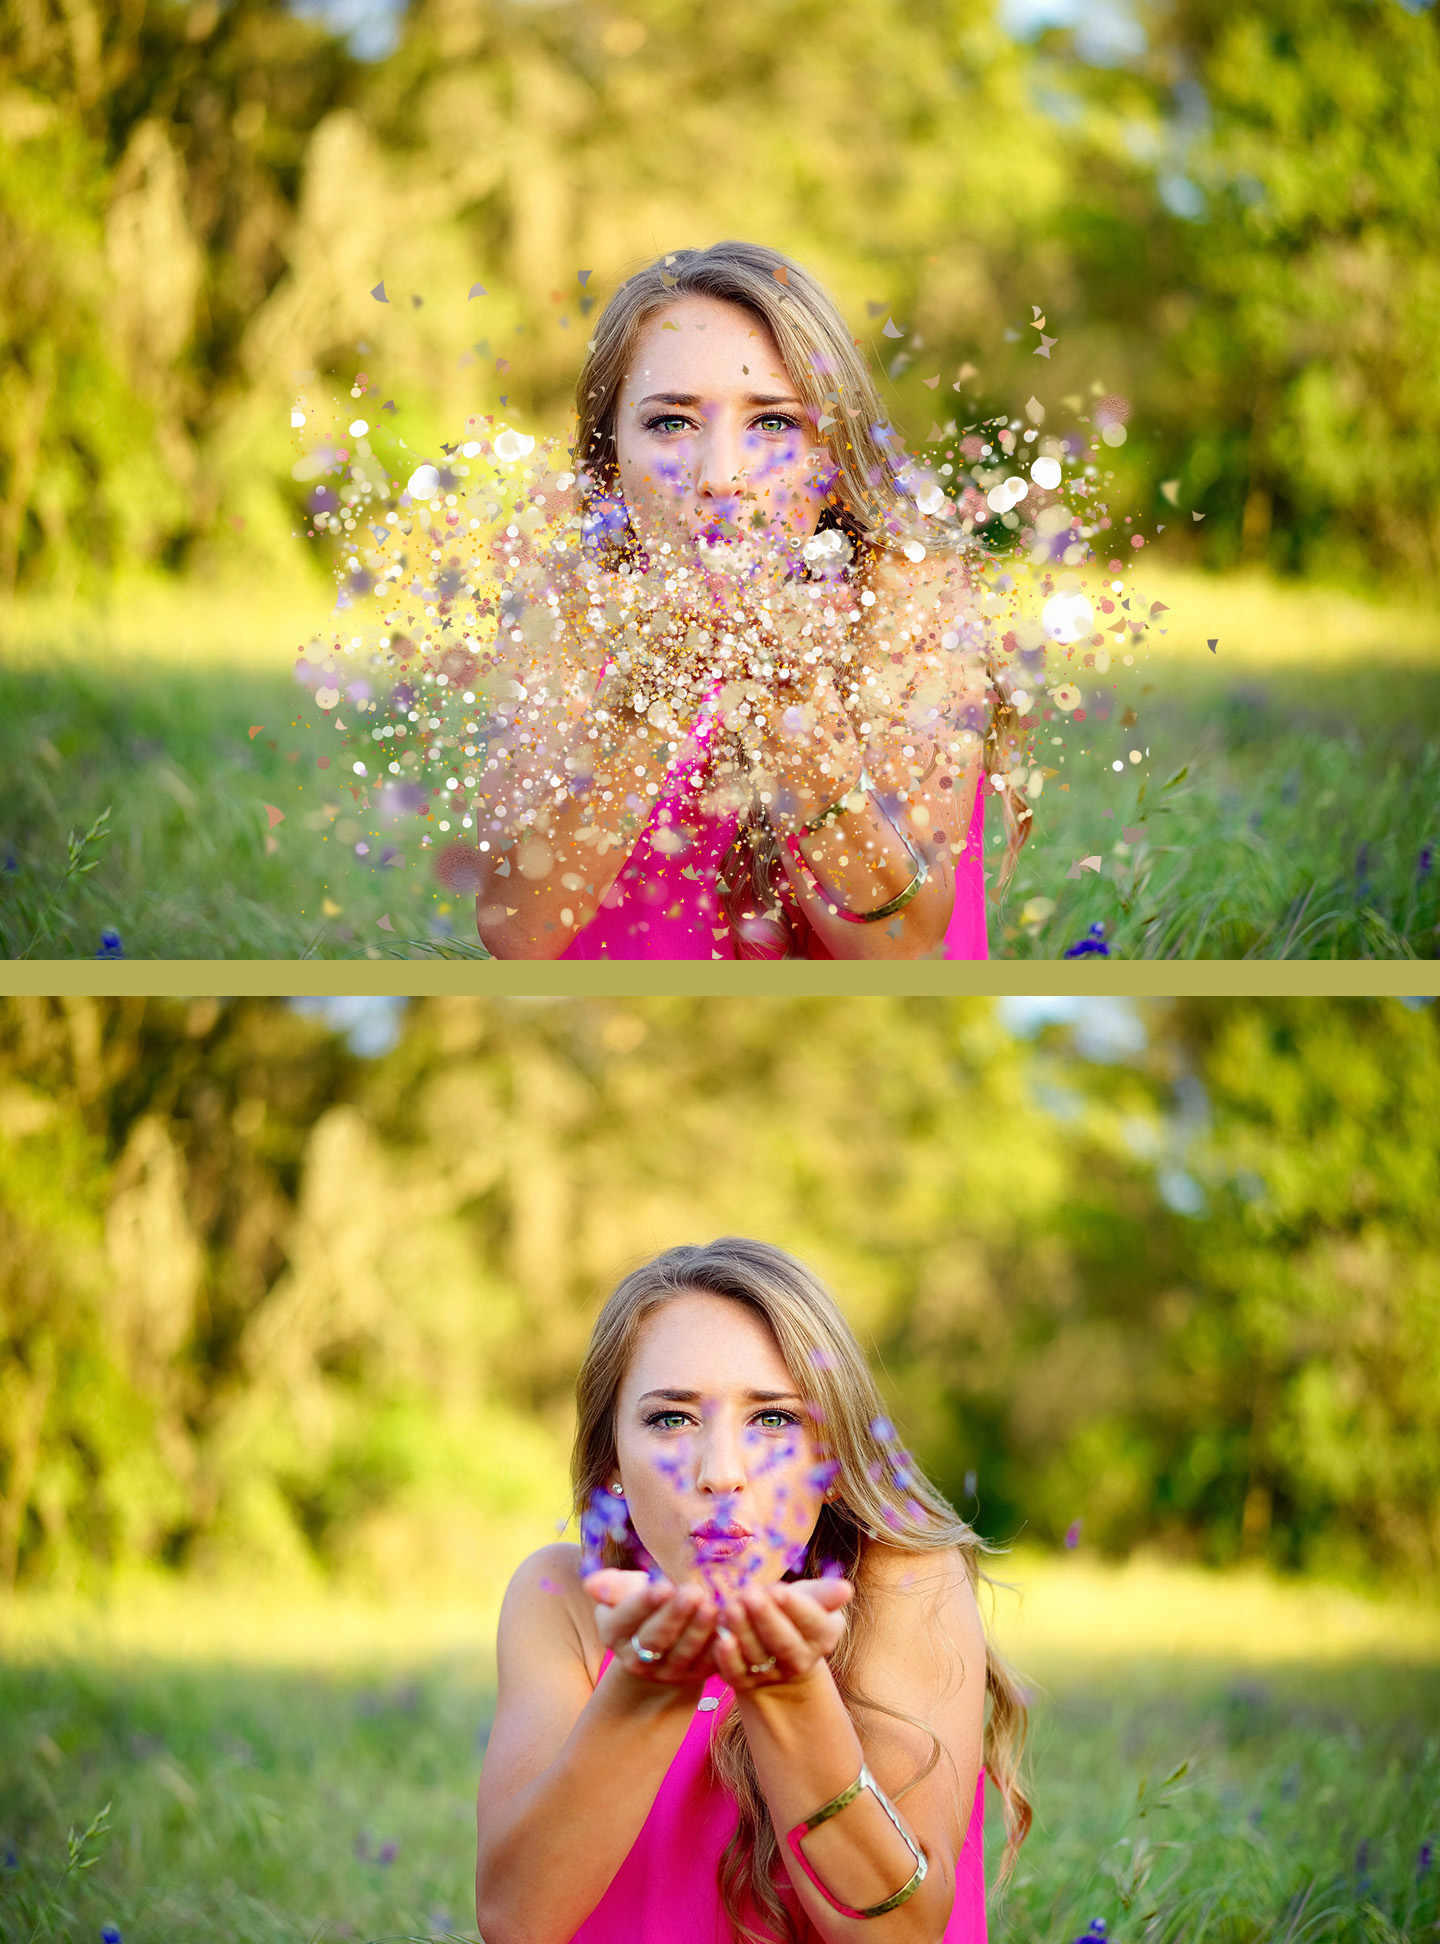 20 Blowing Glitter Photoshop Overlays Png With